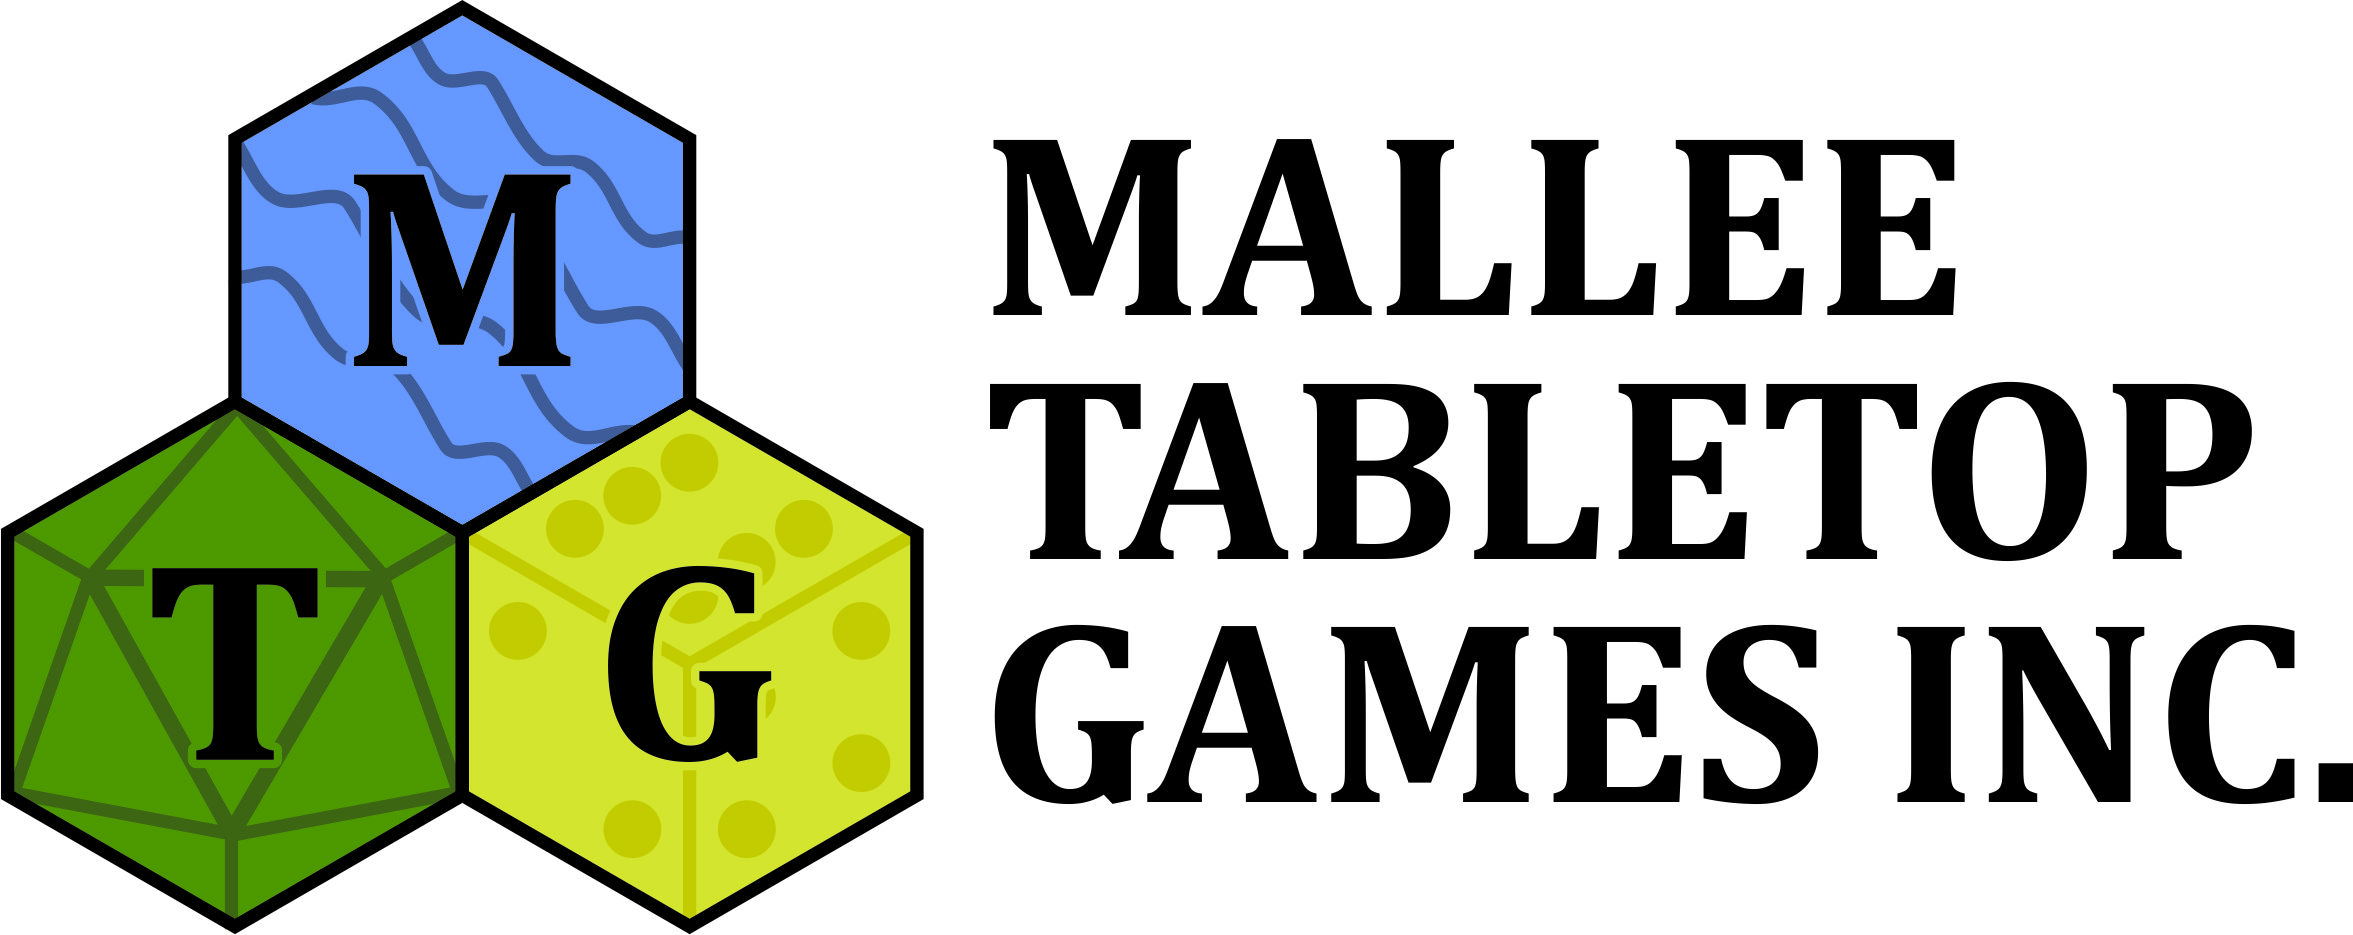 Mallee Tabletop Games Inc.